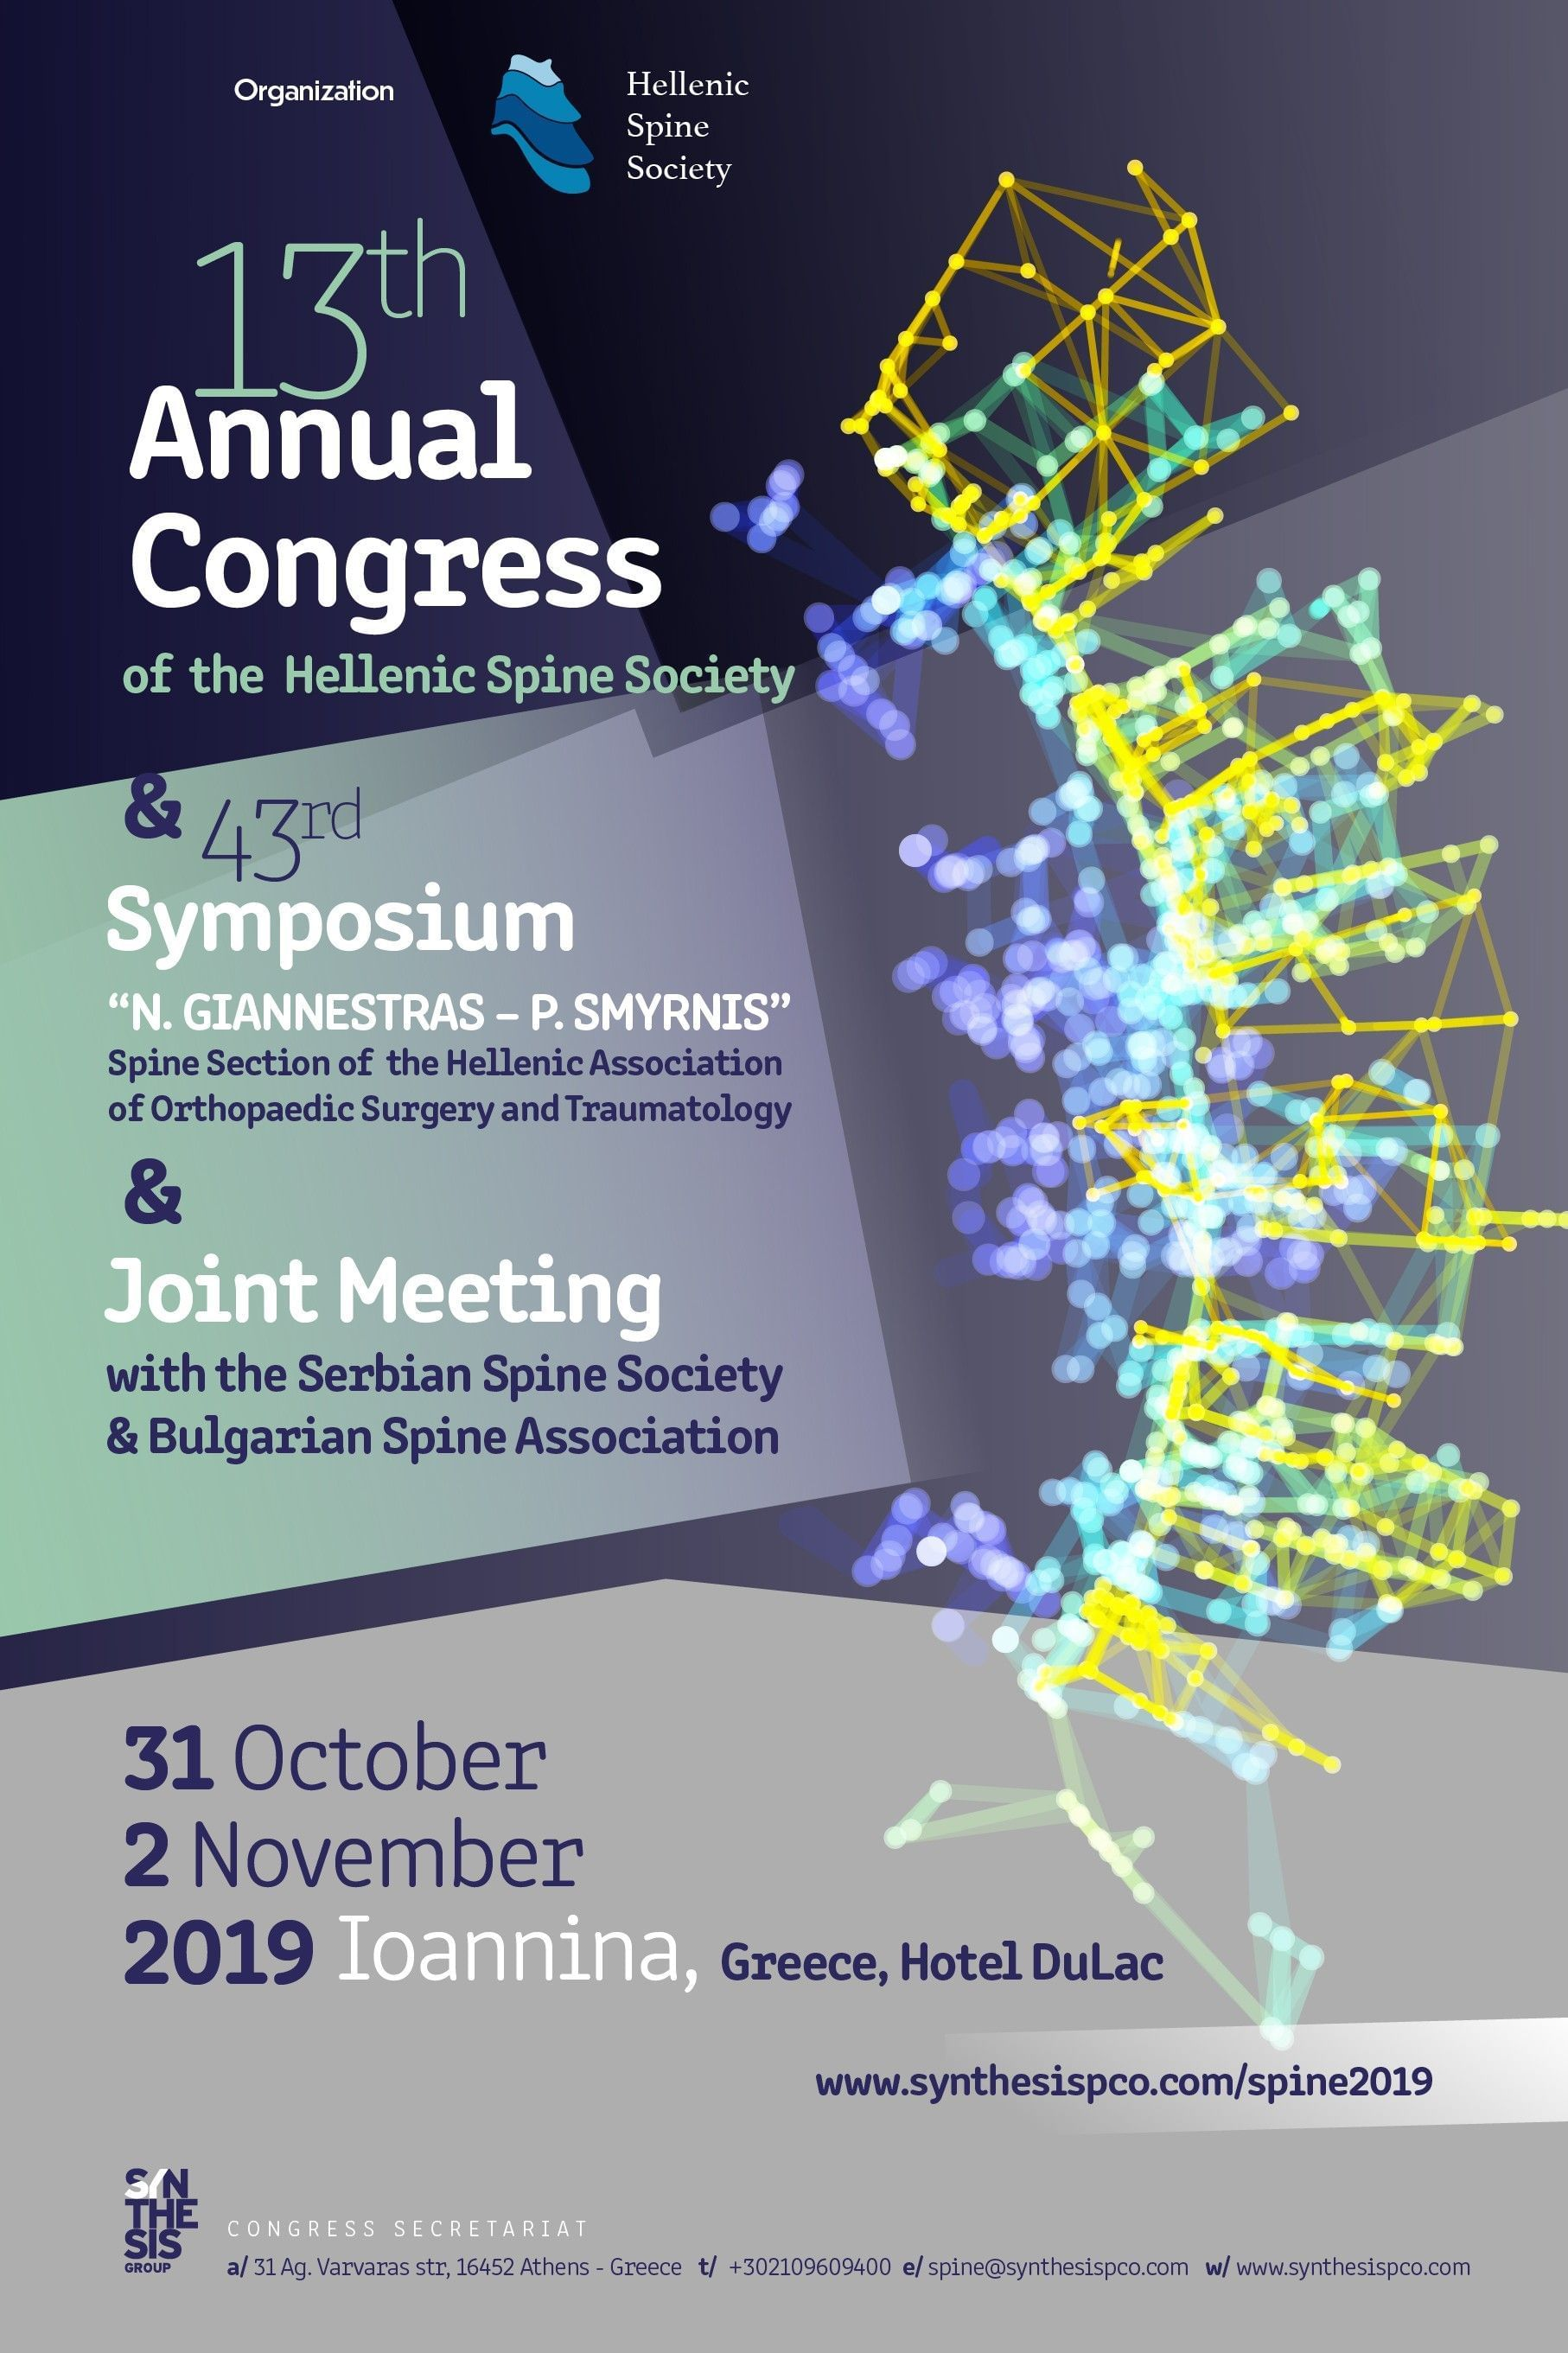 "13th ANNUAL CONGRESS OF THE HELLENIC SPINE SOCIETY & 43rd SYMPOSIUM ""N. GIANNESTRAS - P. SMYRNIS"" & JOINT MEETING WITH THE SERBIAN SPINE SPINE SOCIETY & BULGARIAN SPINE ASSOCIATION"